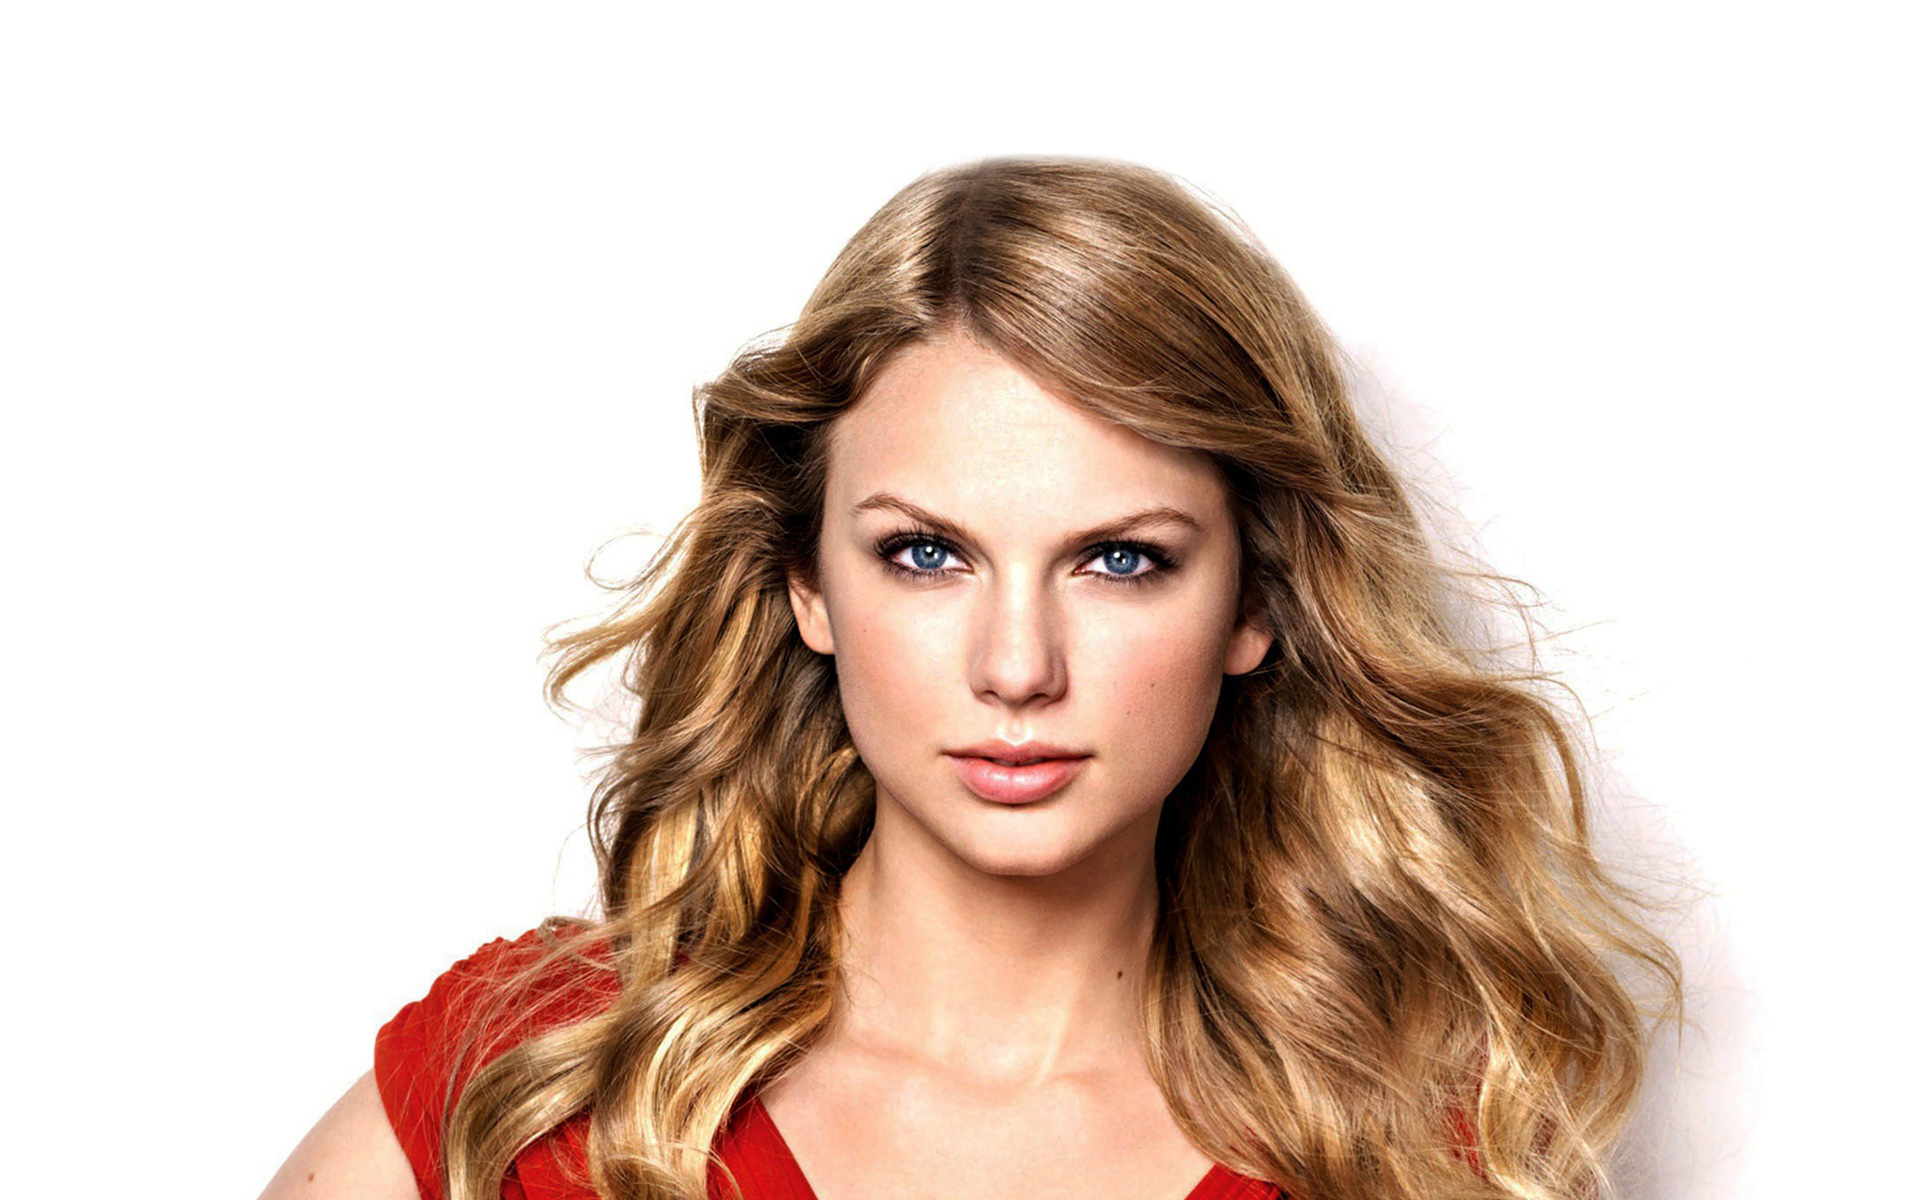 Taylor Swift 15 672.73 Kb